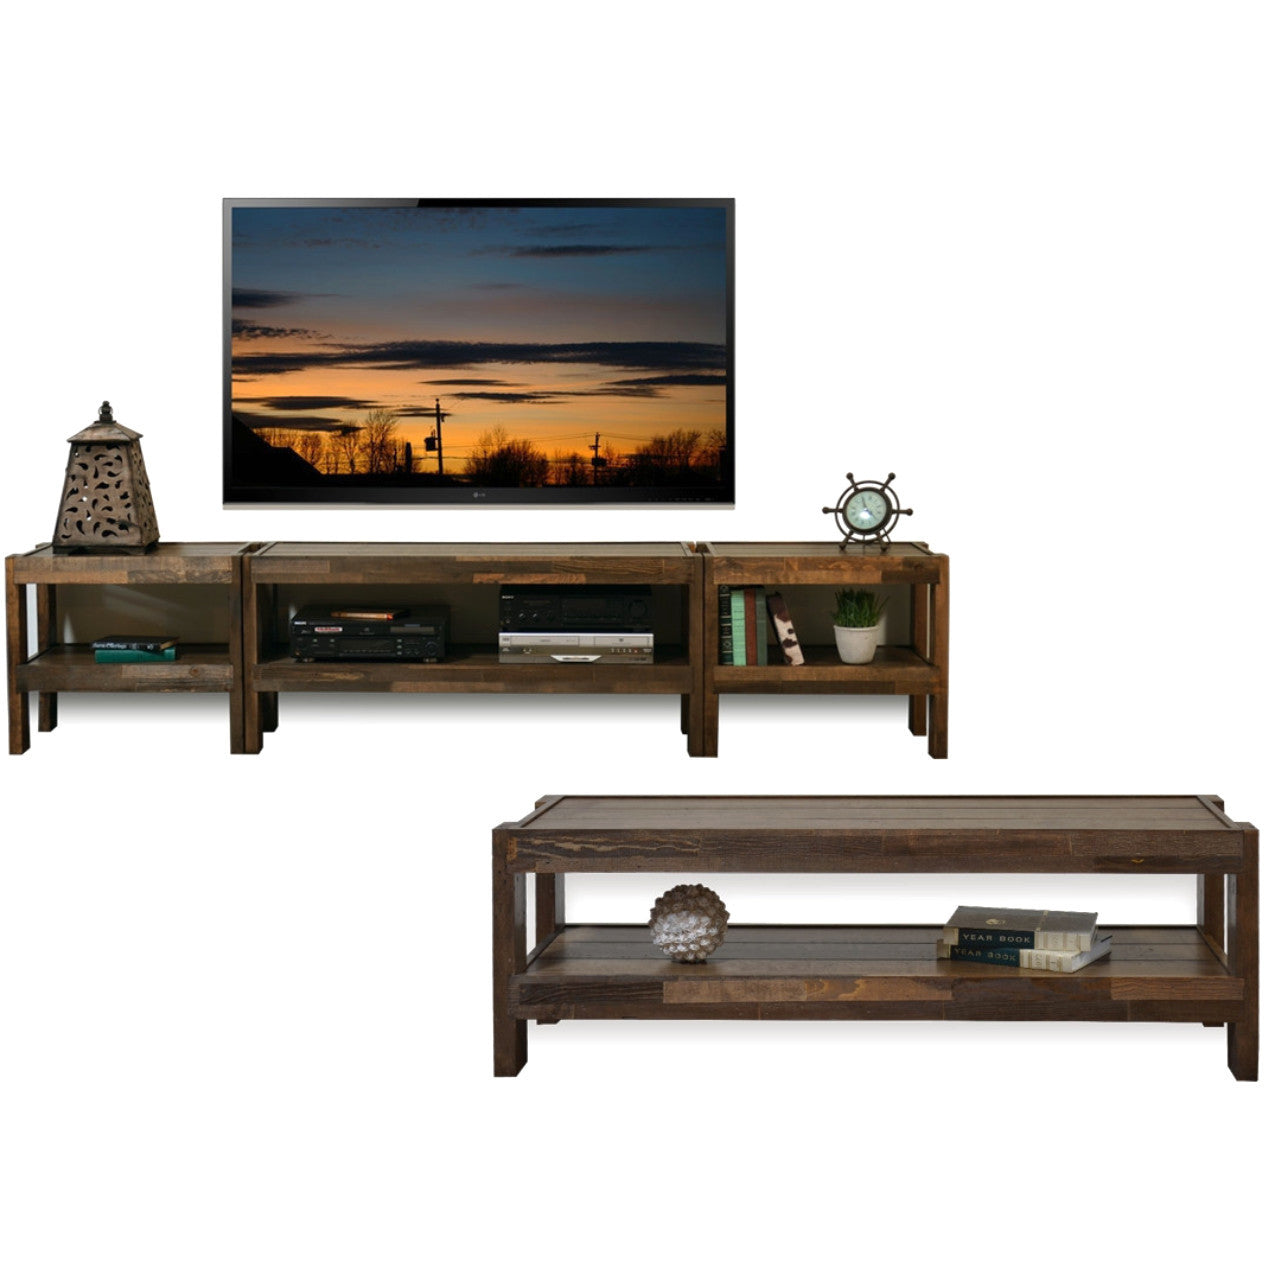 Rustic Reclaimed Pallet Wood Style Entertainment Center TV Stand U0026 Coffee  Table   PresEARTH Spice